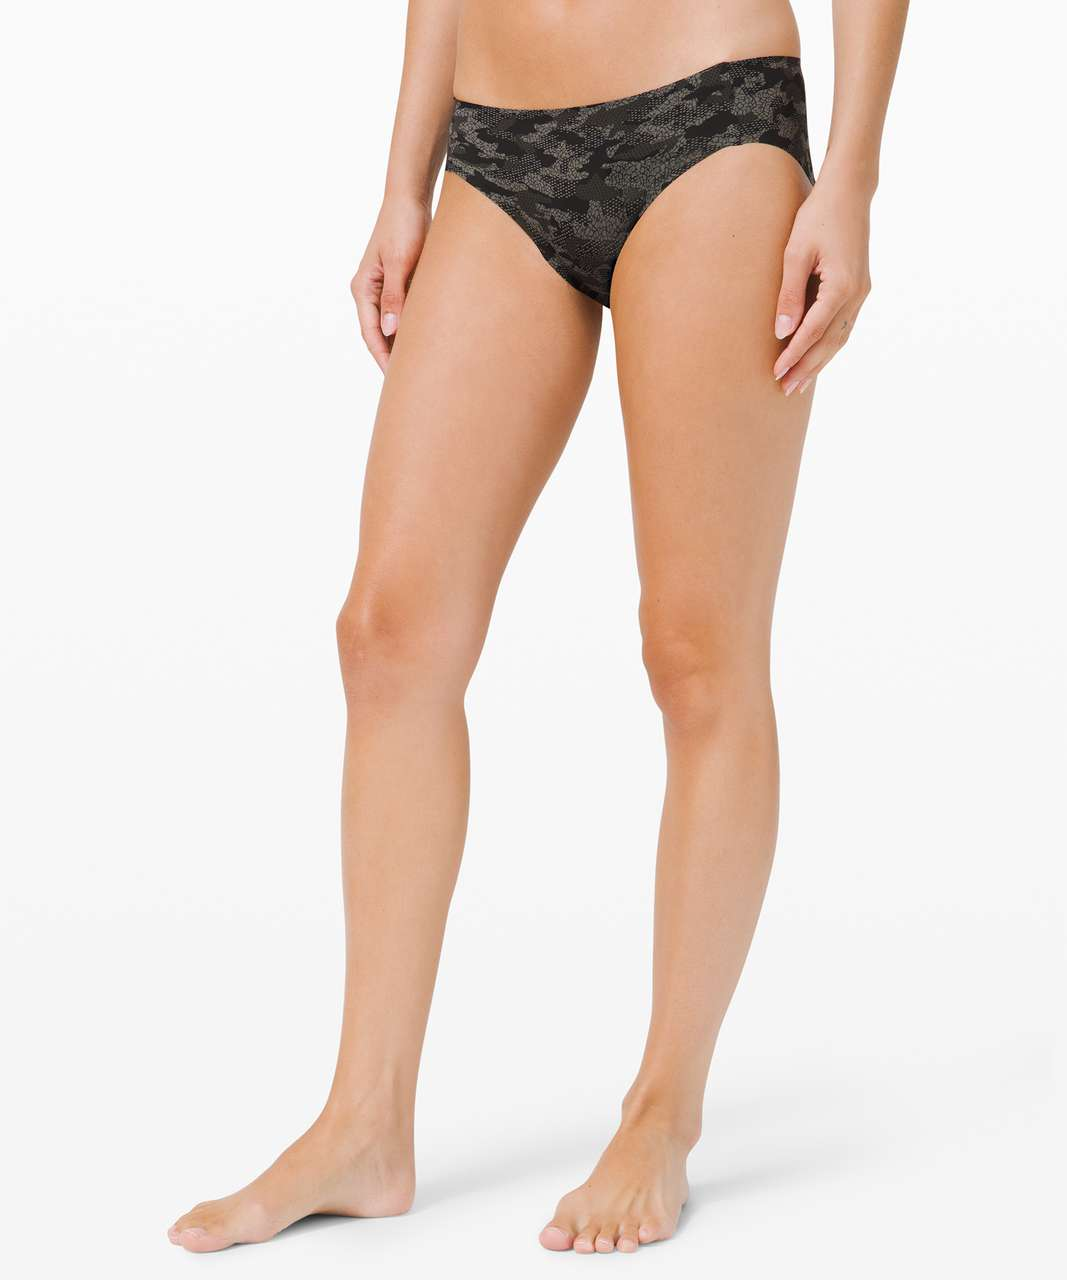 Lululemon Smooth Seamless Hipster - Collage Camo Mini Black Multi